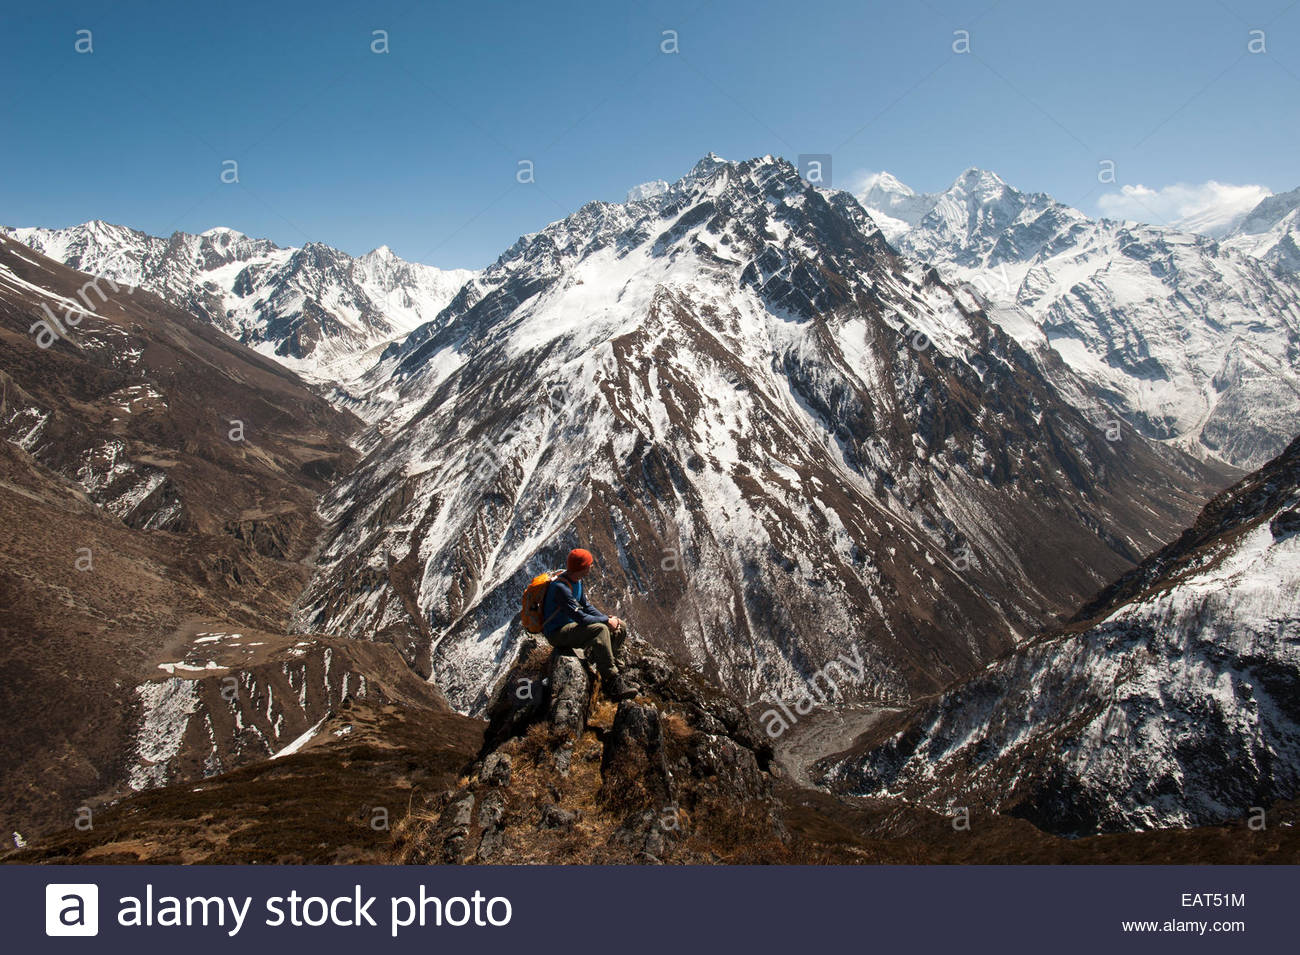 A trekker looks out at the view of Ganesh Himal mountains in Nepal - Stock Image